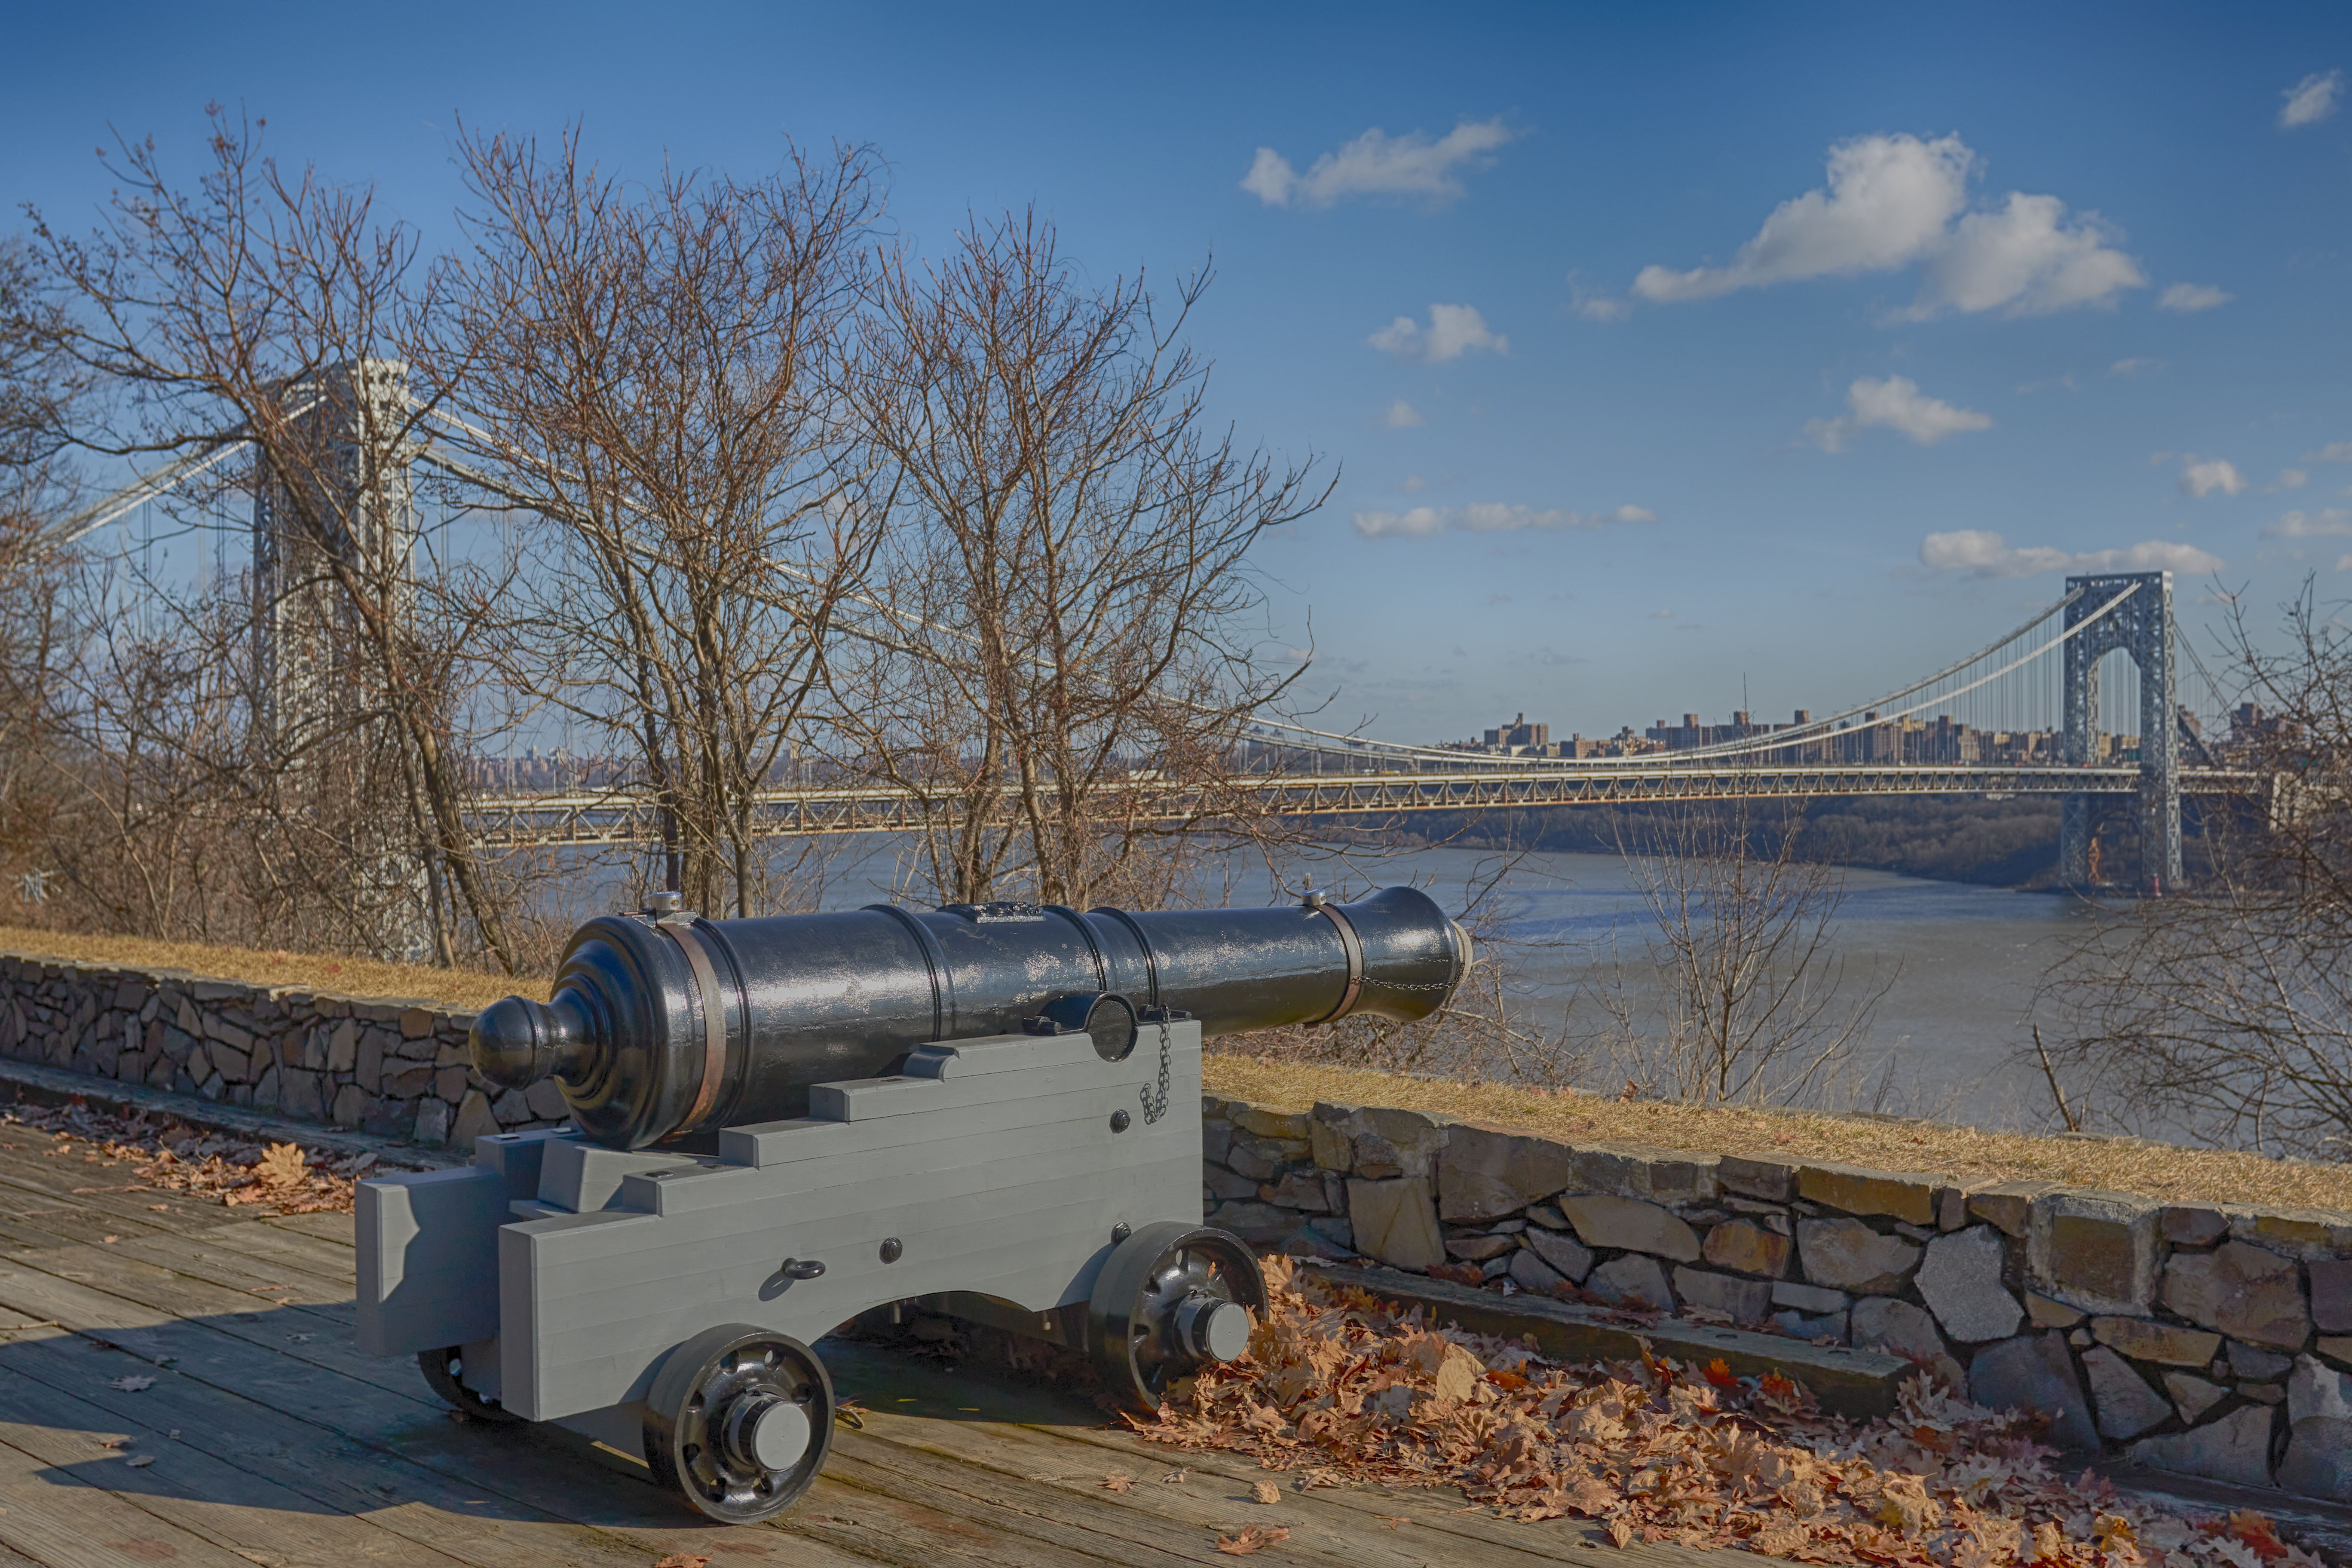 Cannon overlooking the Hudson River.